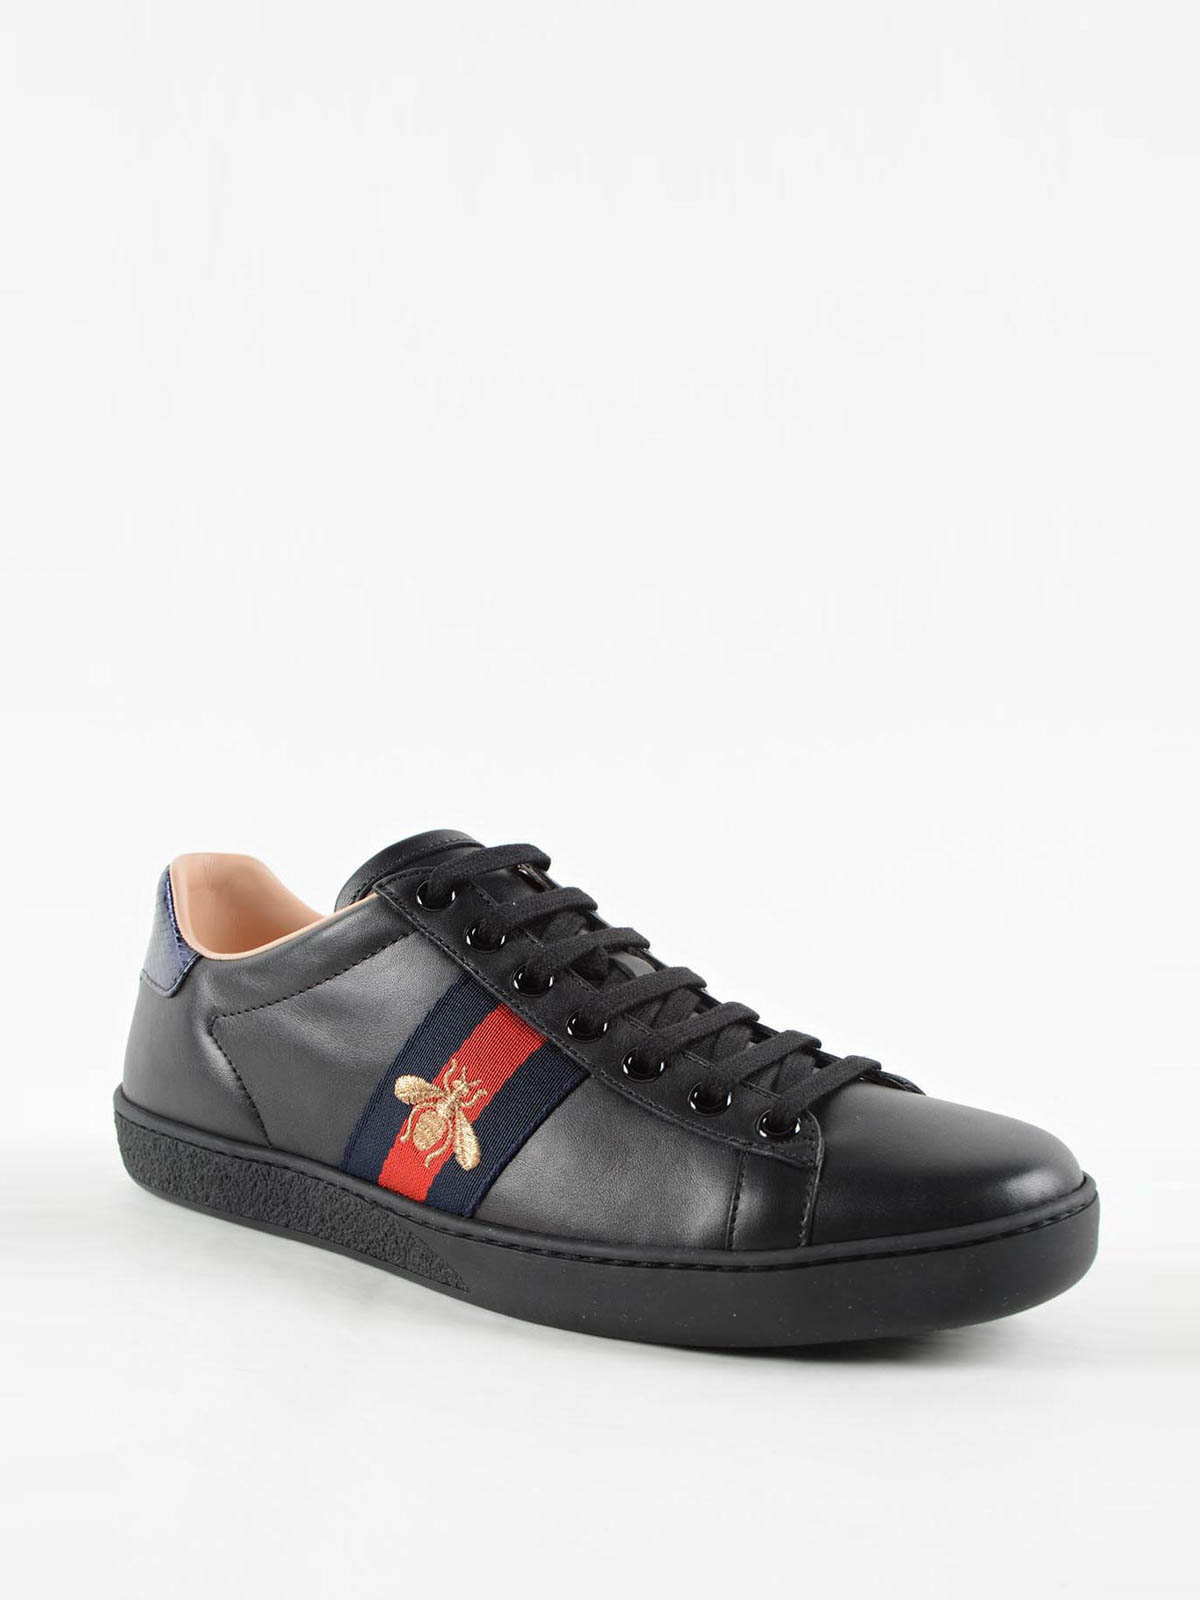 Gucci Ace Sneakers Trainers 431942a38g01284 Shop